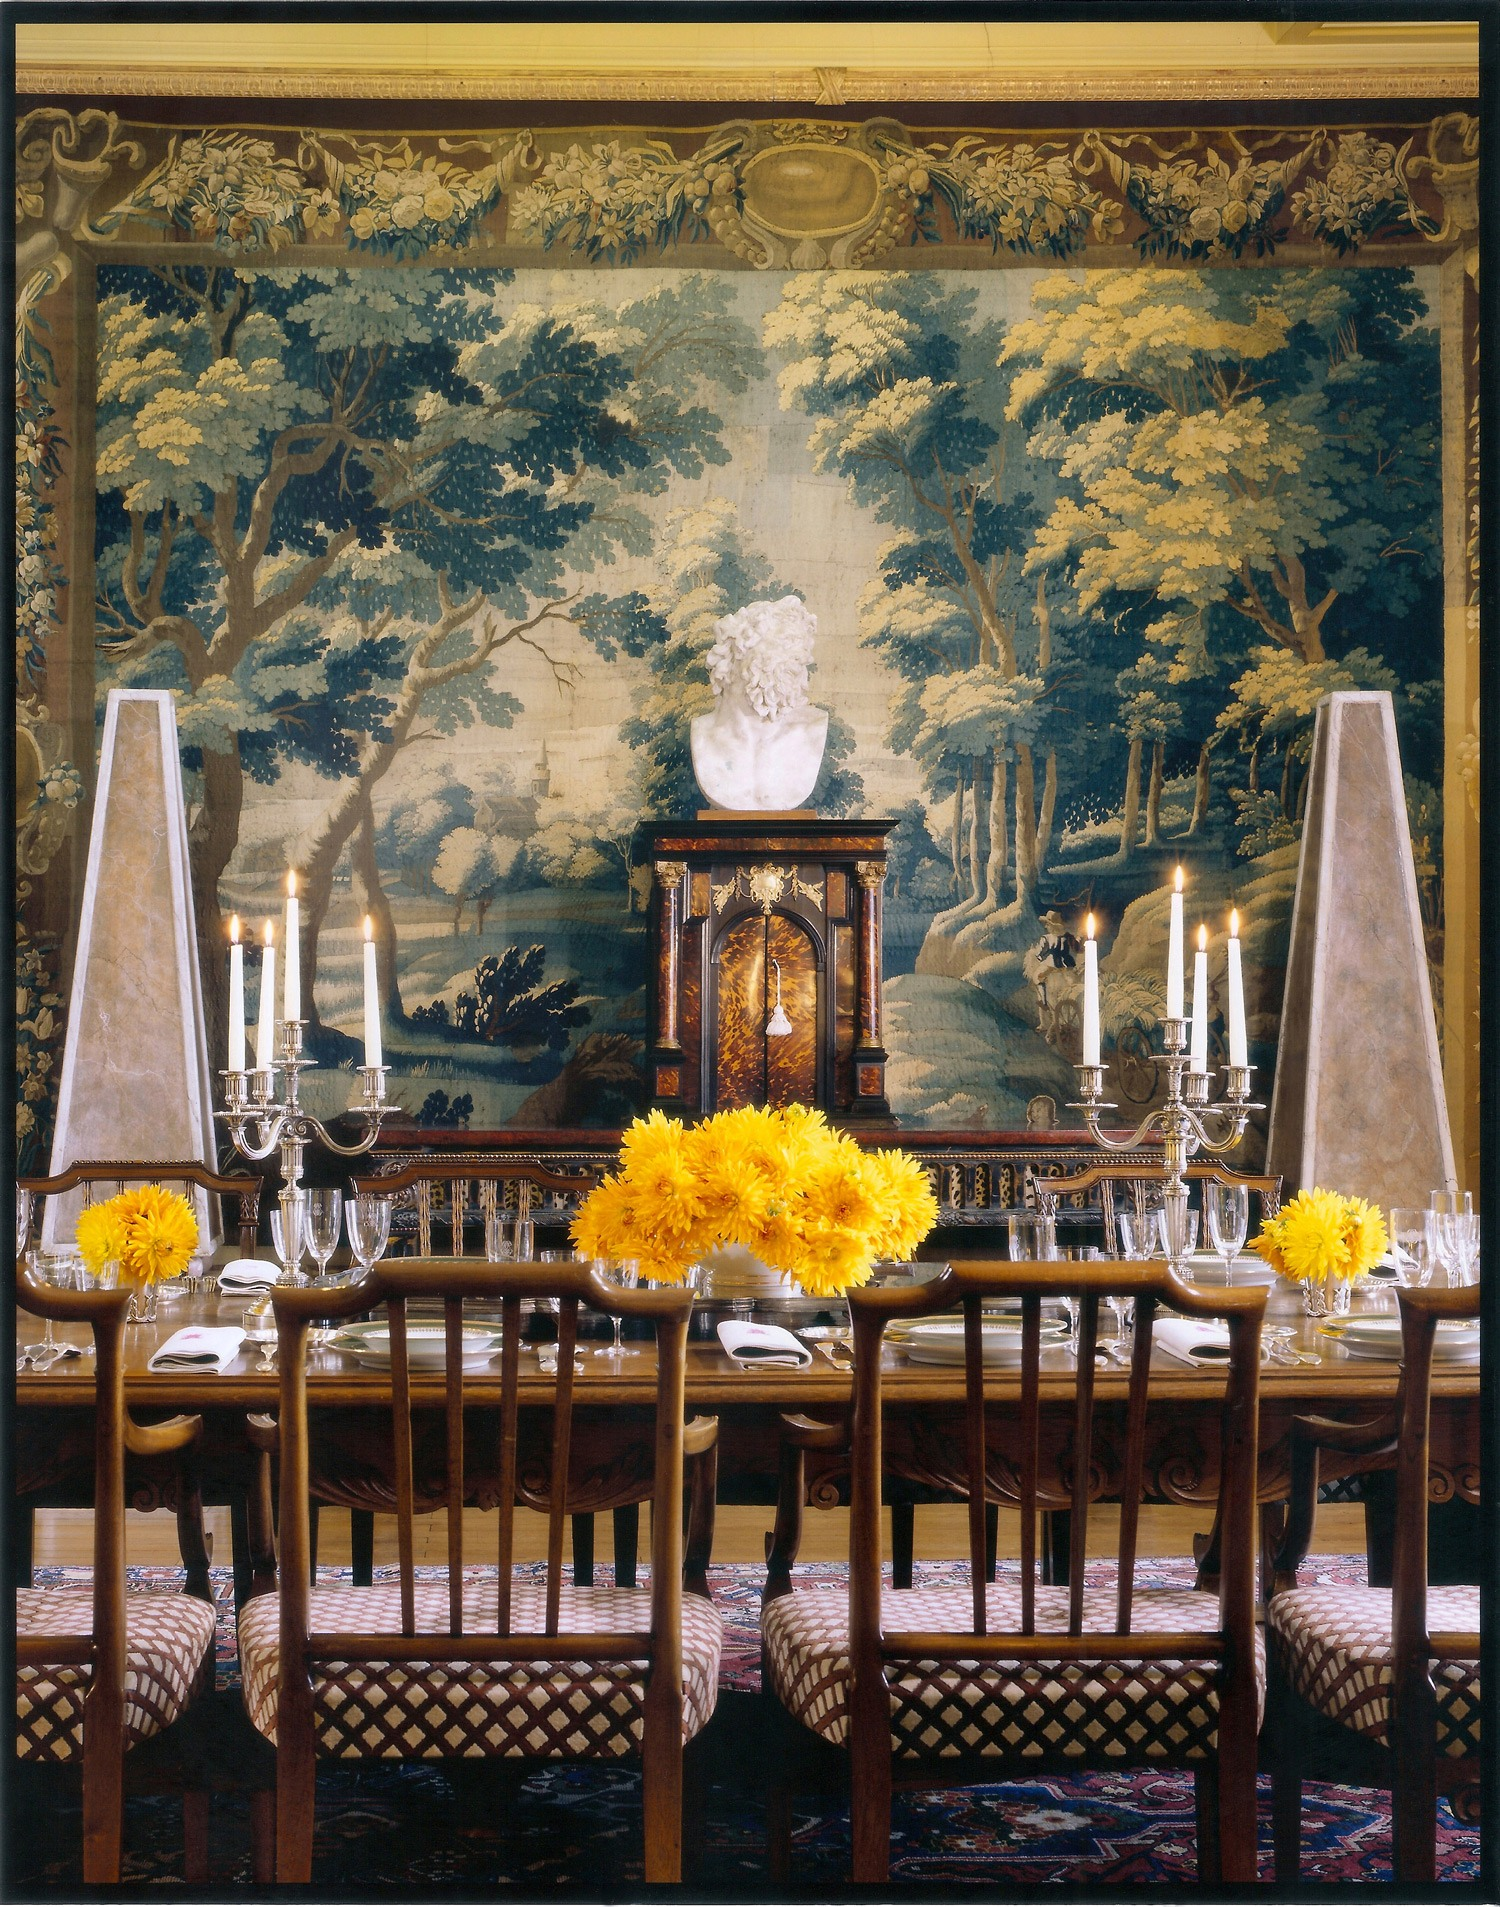 """""""In this dining room in France, I hung a 17th-century tapestry as a focal point. I love the depth and texture a tapestry brings to a room. I favor old ones for their faded colors and textures, but there are many beautiful modern tapestries as well, and they are often affordable."""" Photo: Marina Faust"""